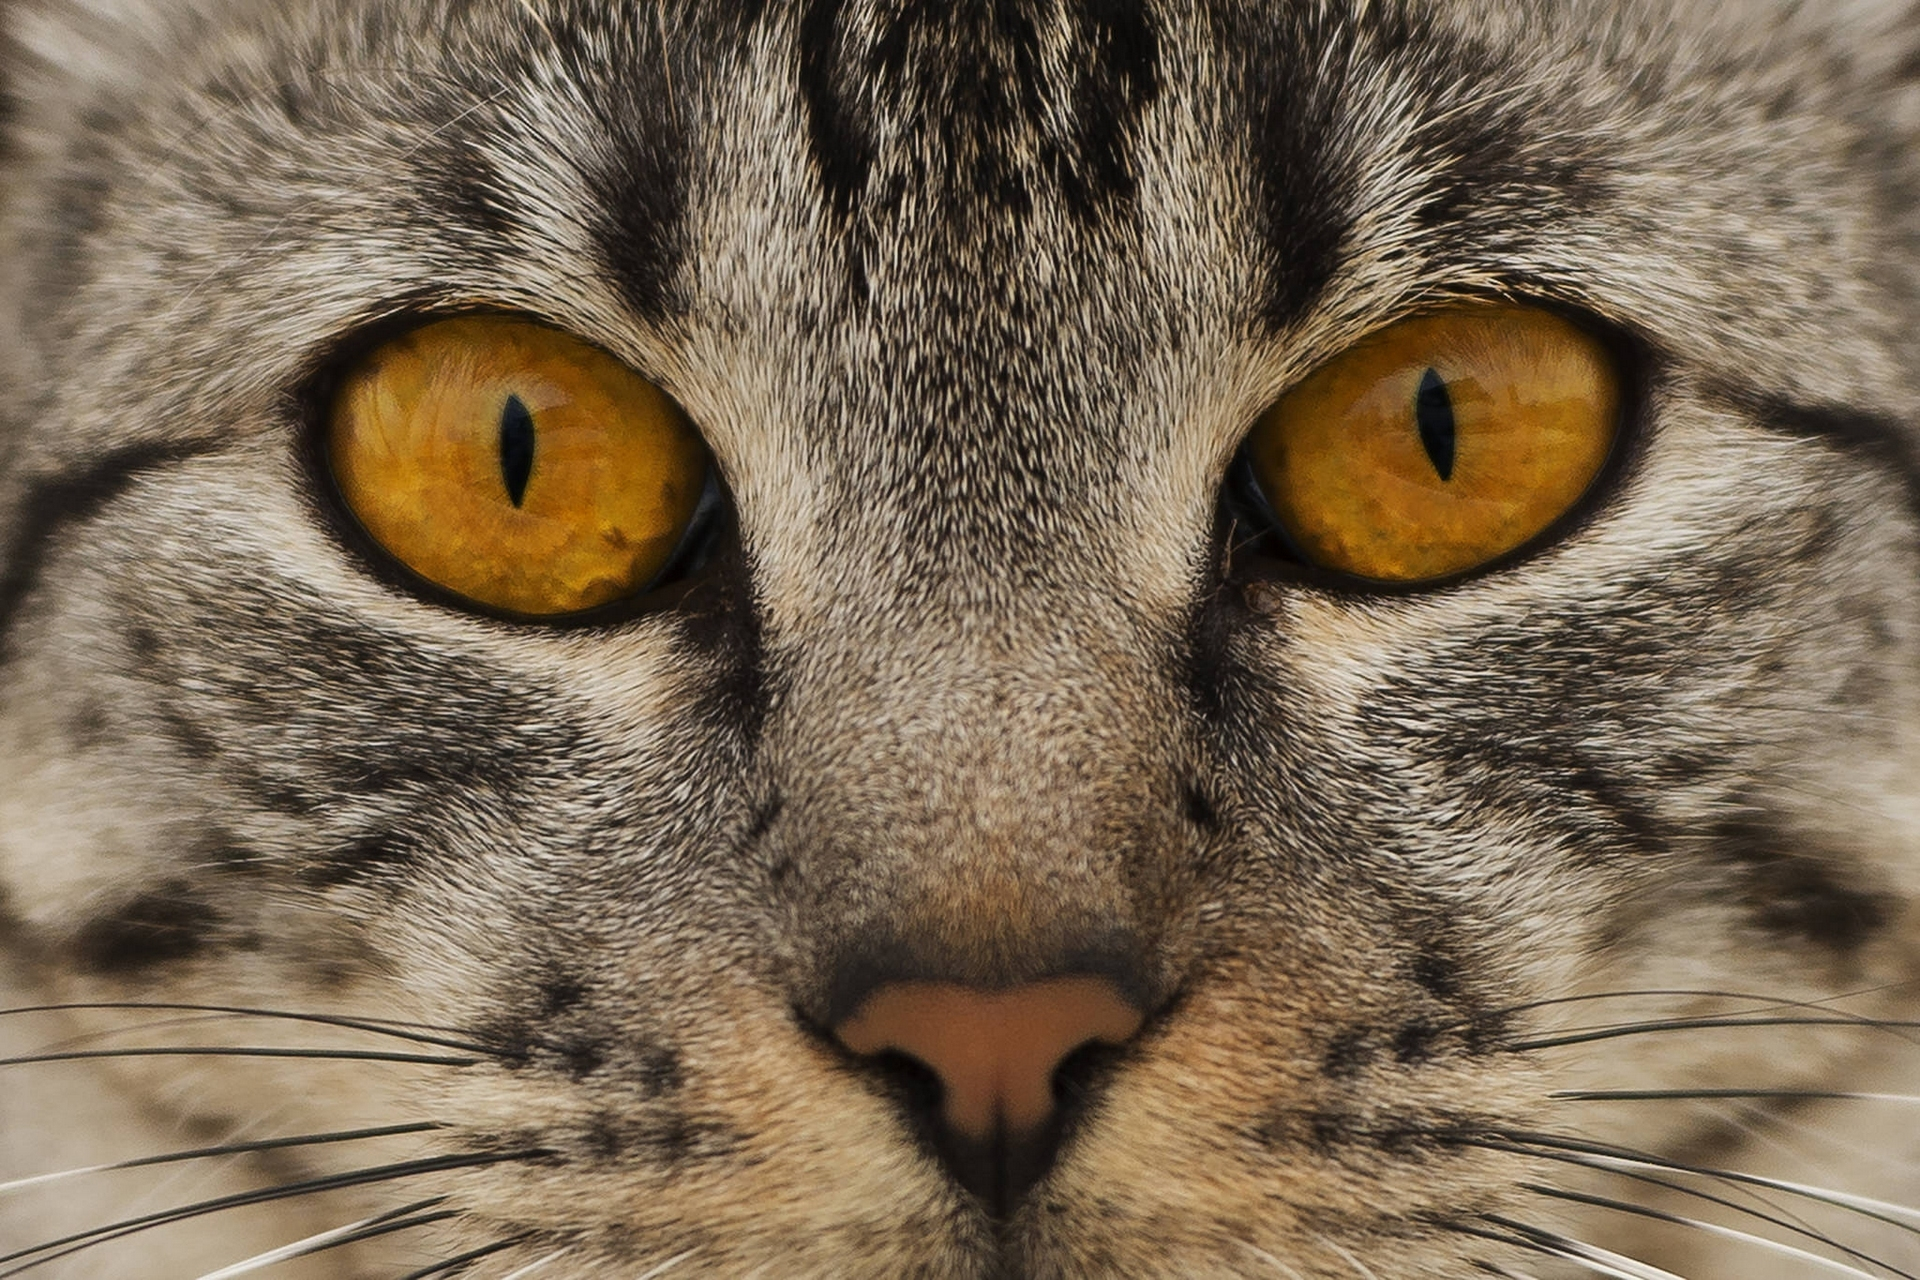 Download mobile wallpaper Eyes, Nose, Cat, Animals, Muzzle for free.